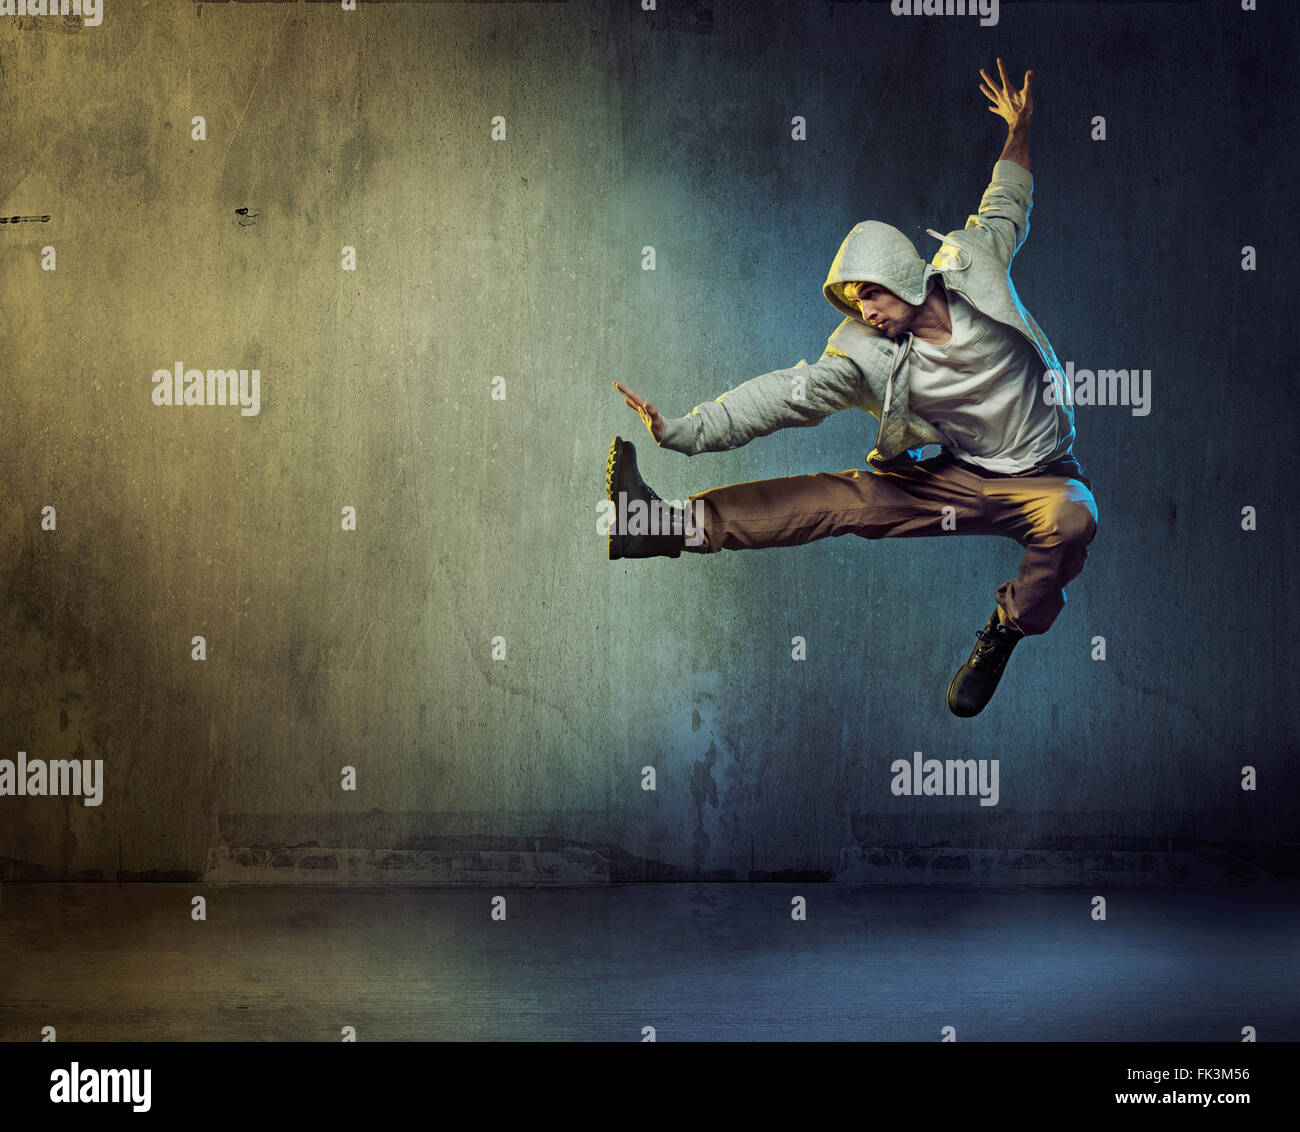 Athletic dancer in a super jumping pose - Stock Image